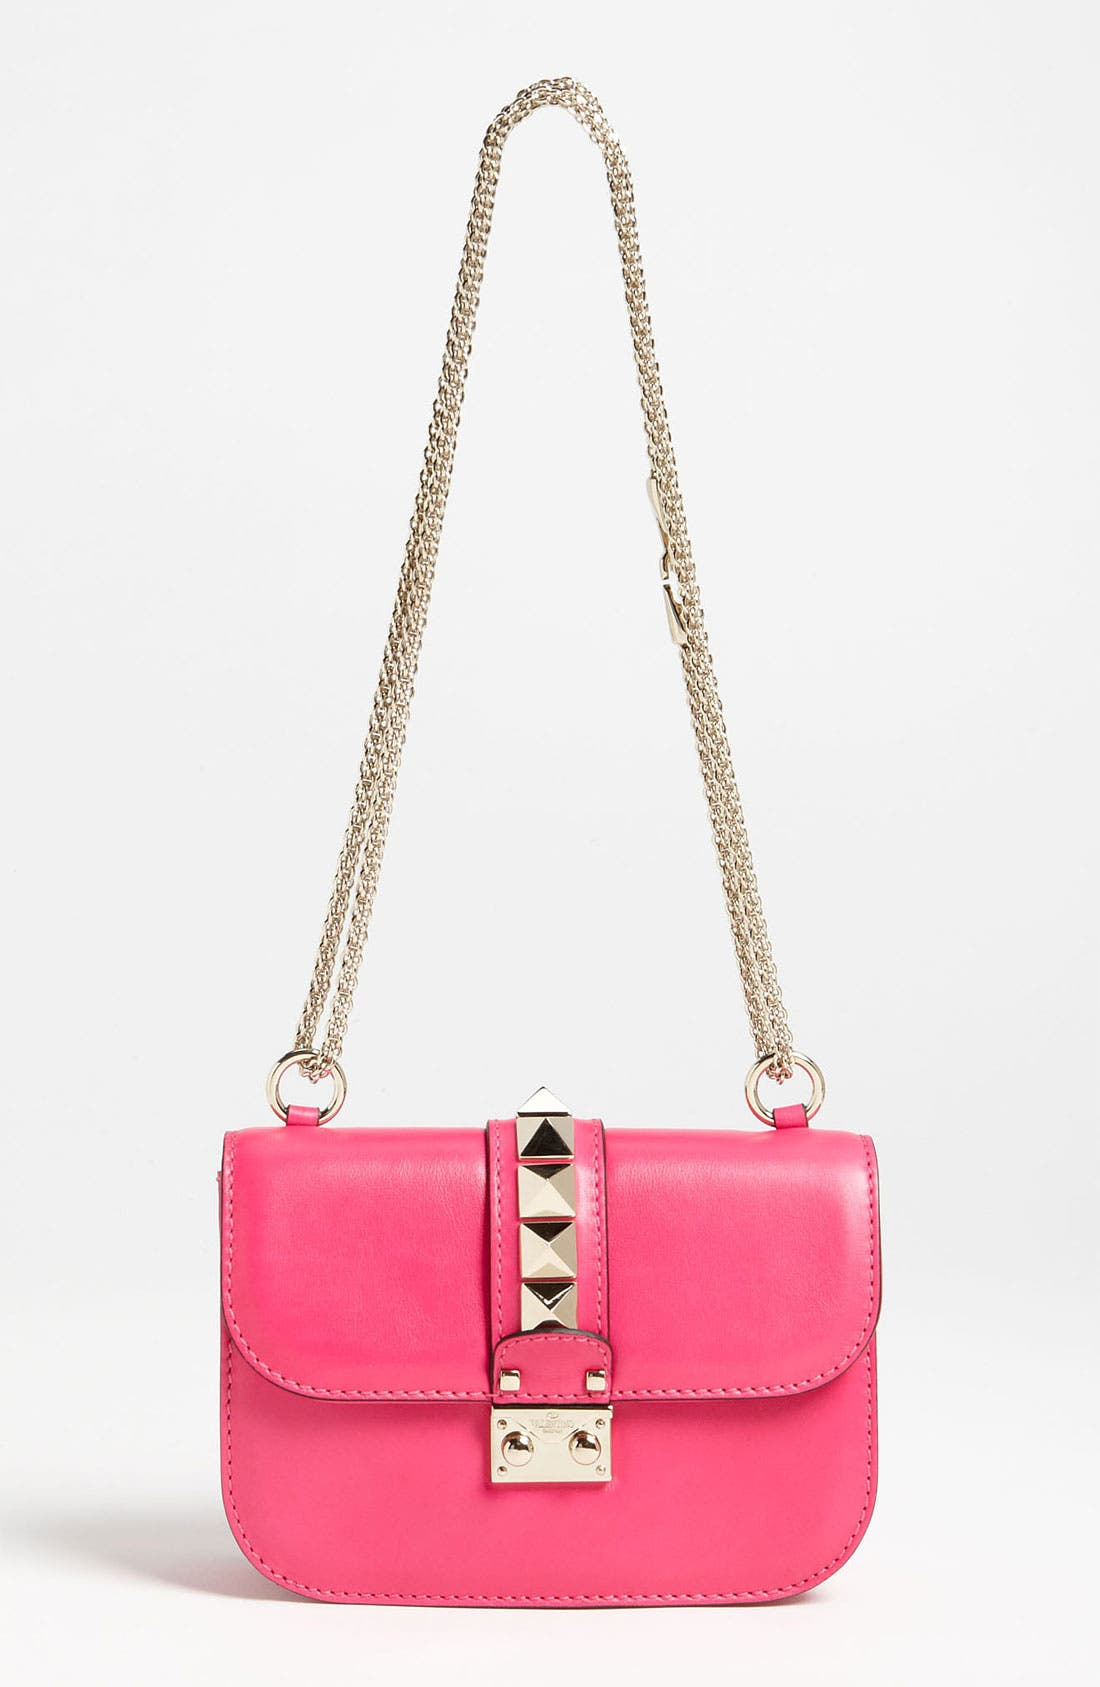 Alternate Image 1 Selected - Valentino 'Lock - Small' Leather Flap Bag